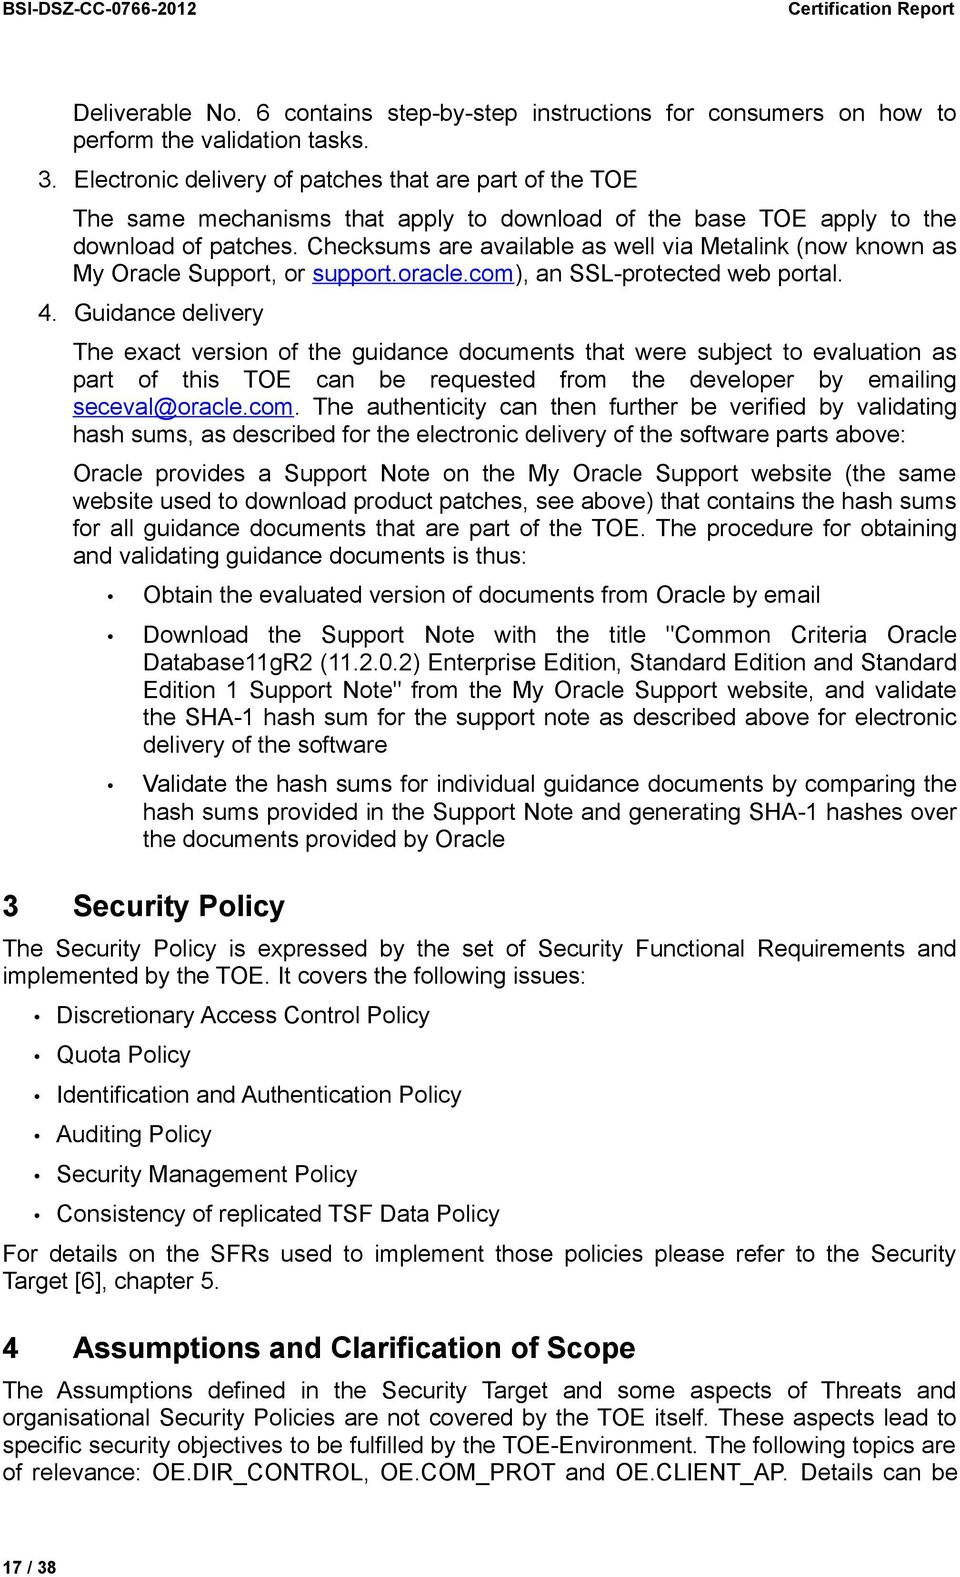 Checksums are available as well via Metalink (now known as My Oracle Support, or support.oracle.com), an SSL-protected web portal. 4.